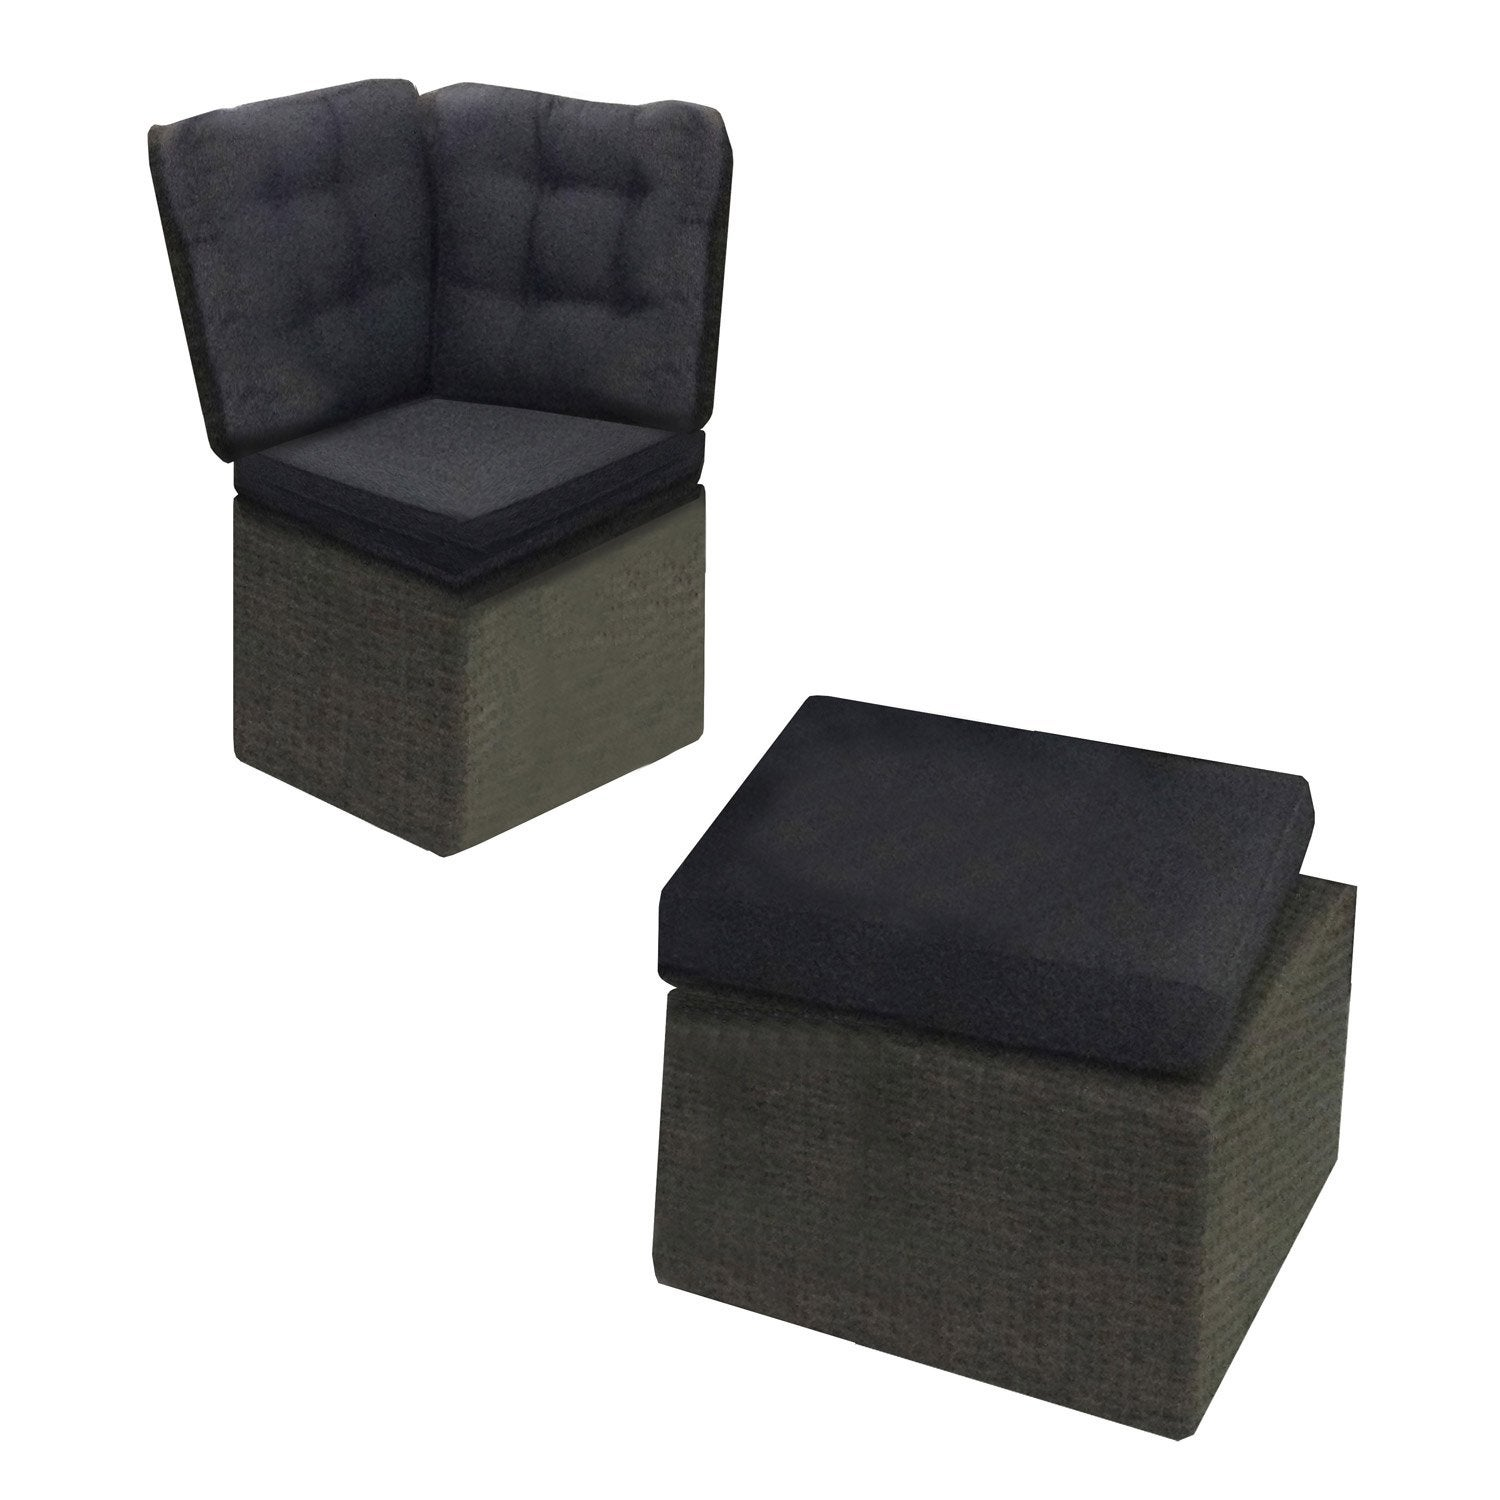 pouf et angle du canap pour salon de jardin daveport. Black Bedroom Furniture Sets. Home Design Ideas